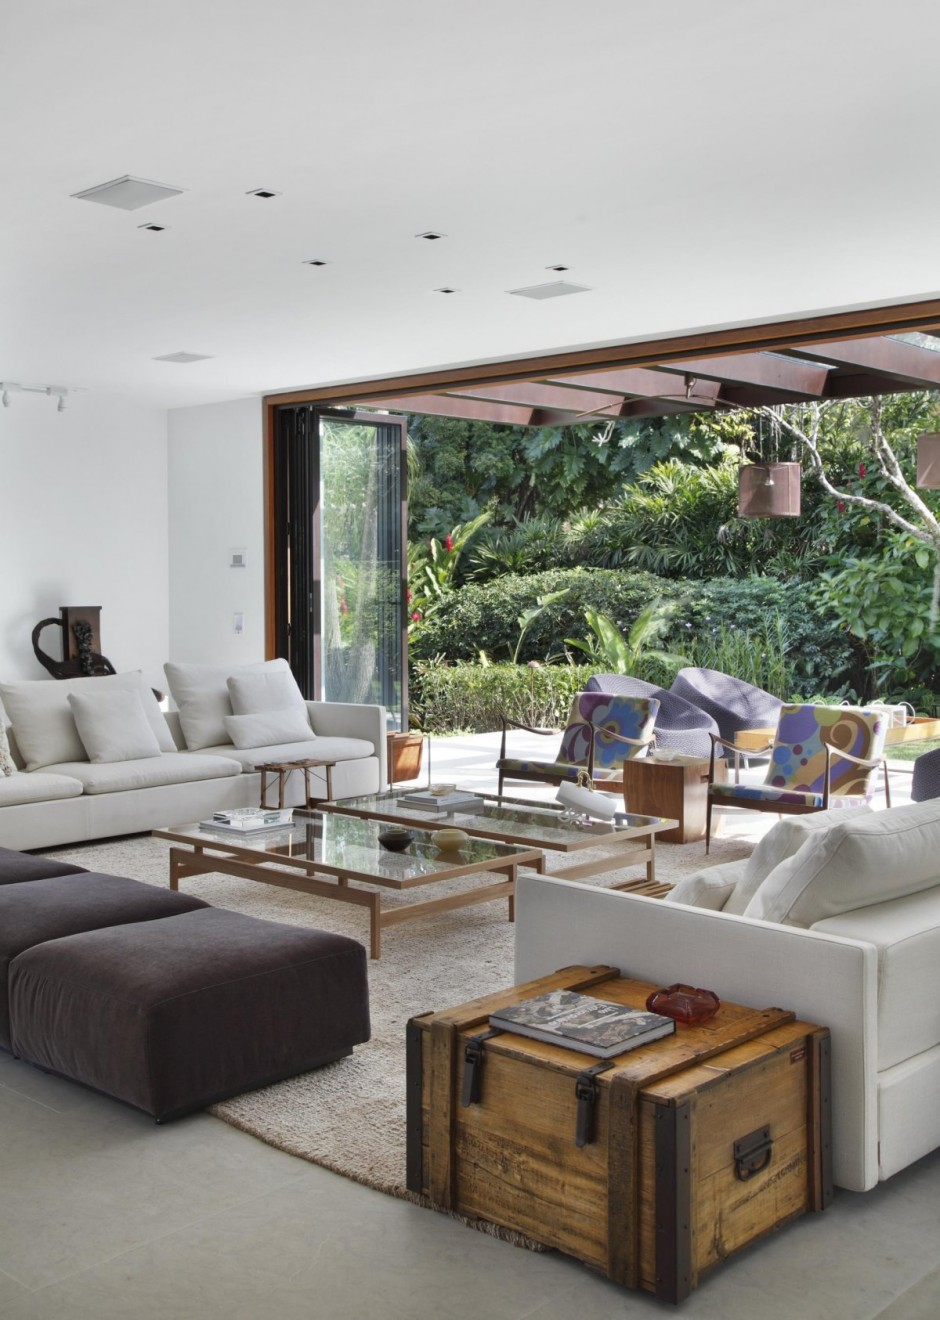 View in gallery contemporary colonial home in rio 12 jpg. Contemporary Colonial Home in Rio decorated in neutral palette